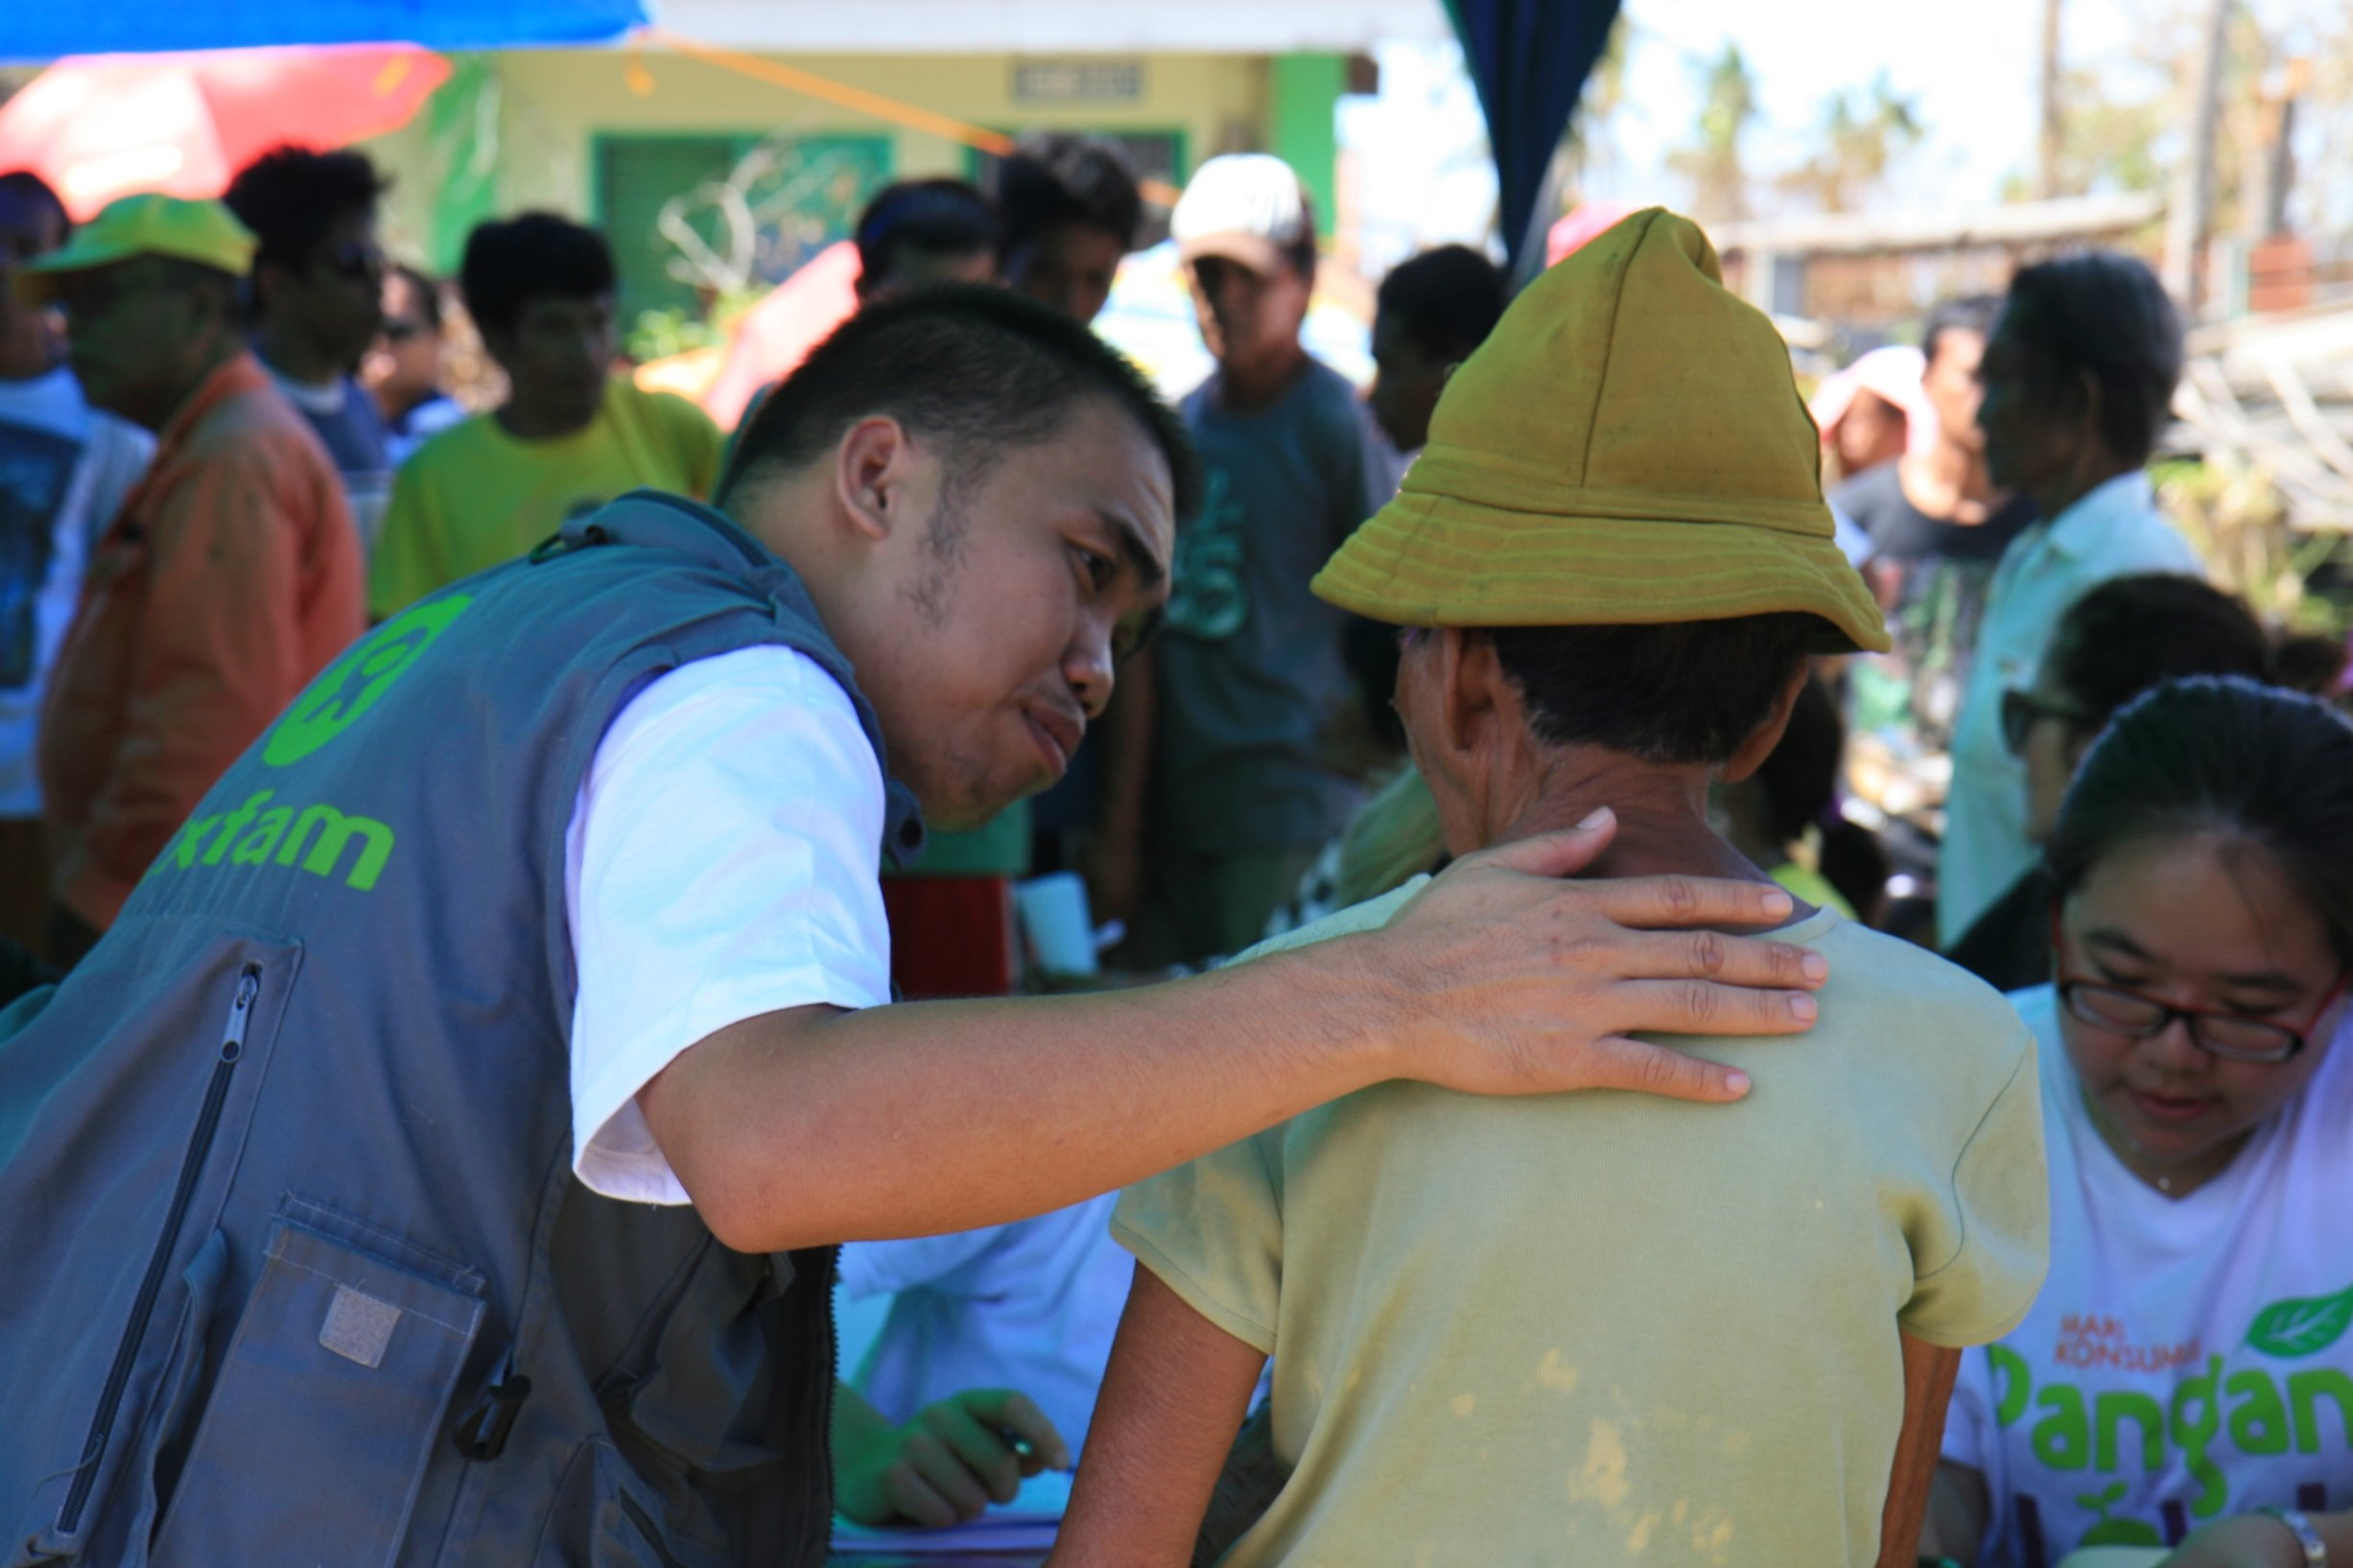 Oxfam staff offering support and reassurance to recipients during the distribution of hygiene items in northern Cebu in 2013.